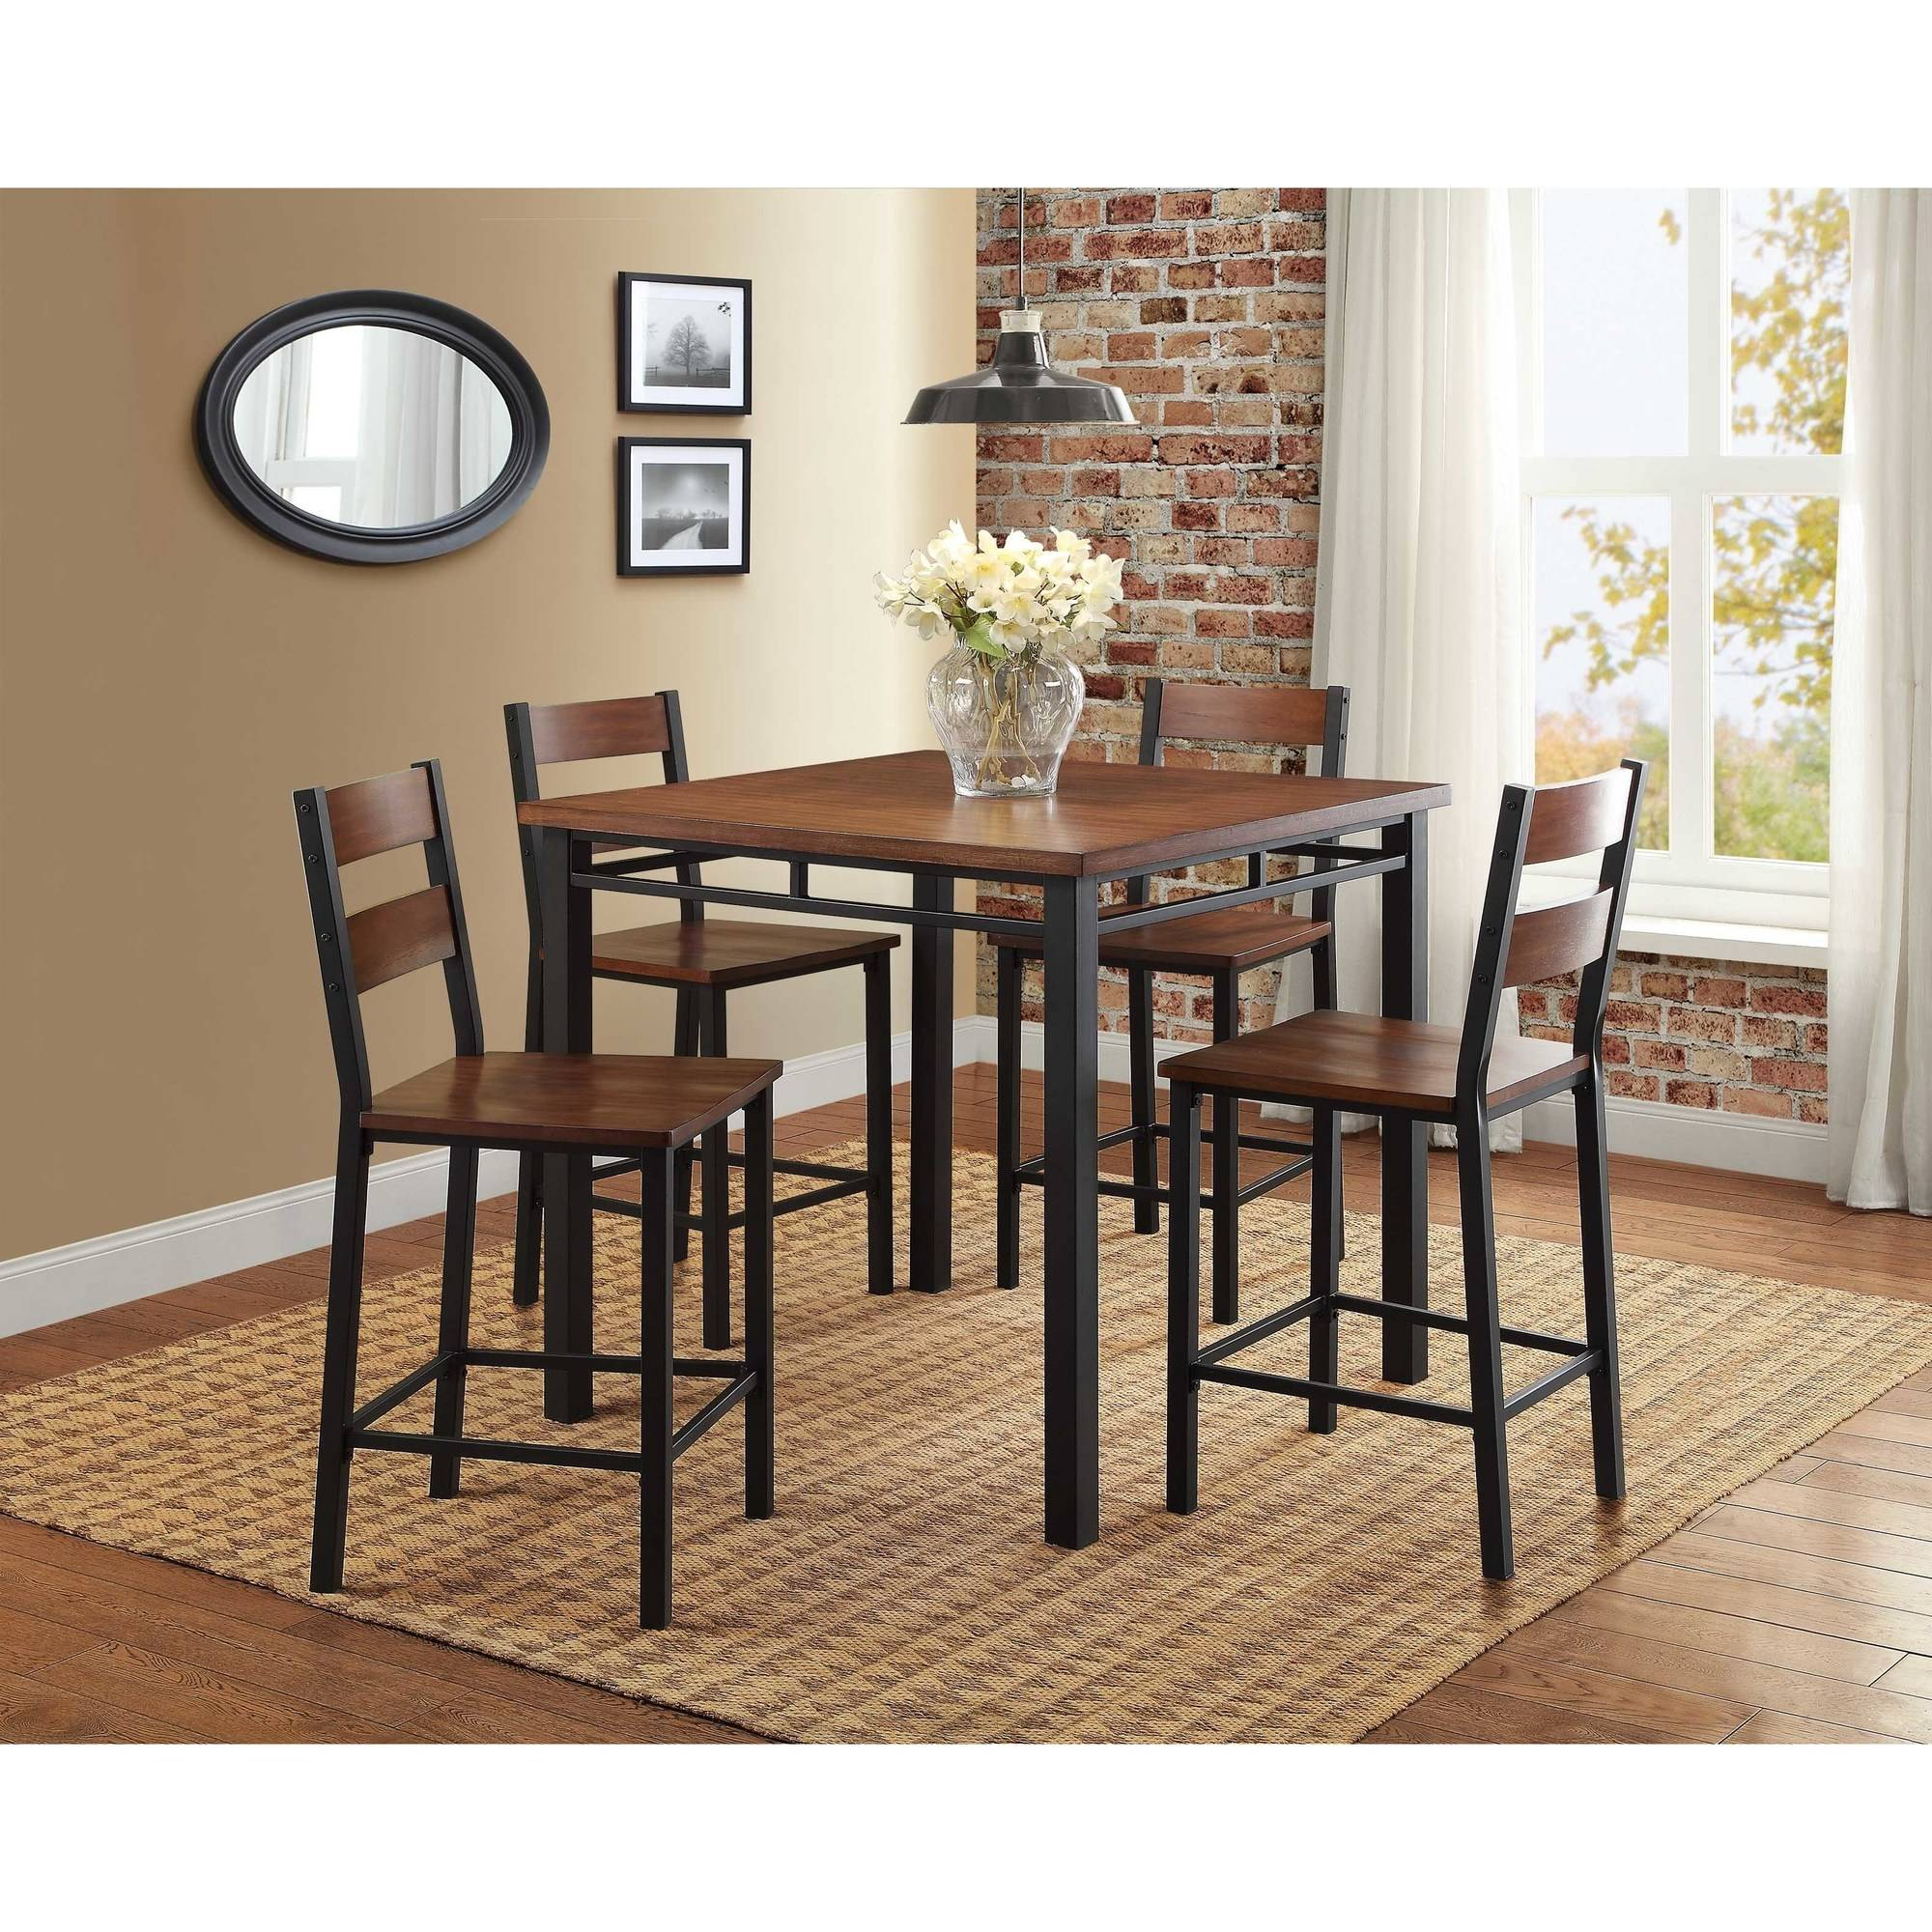 dining room sets - walmart